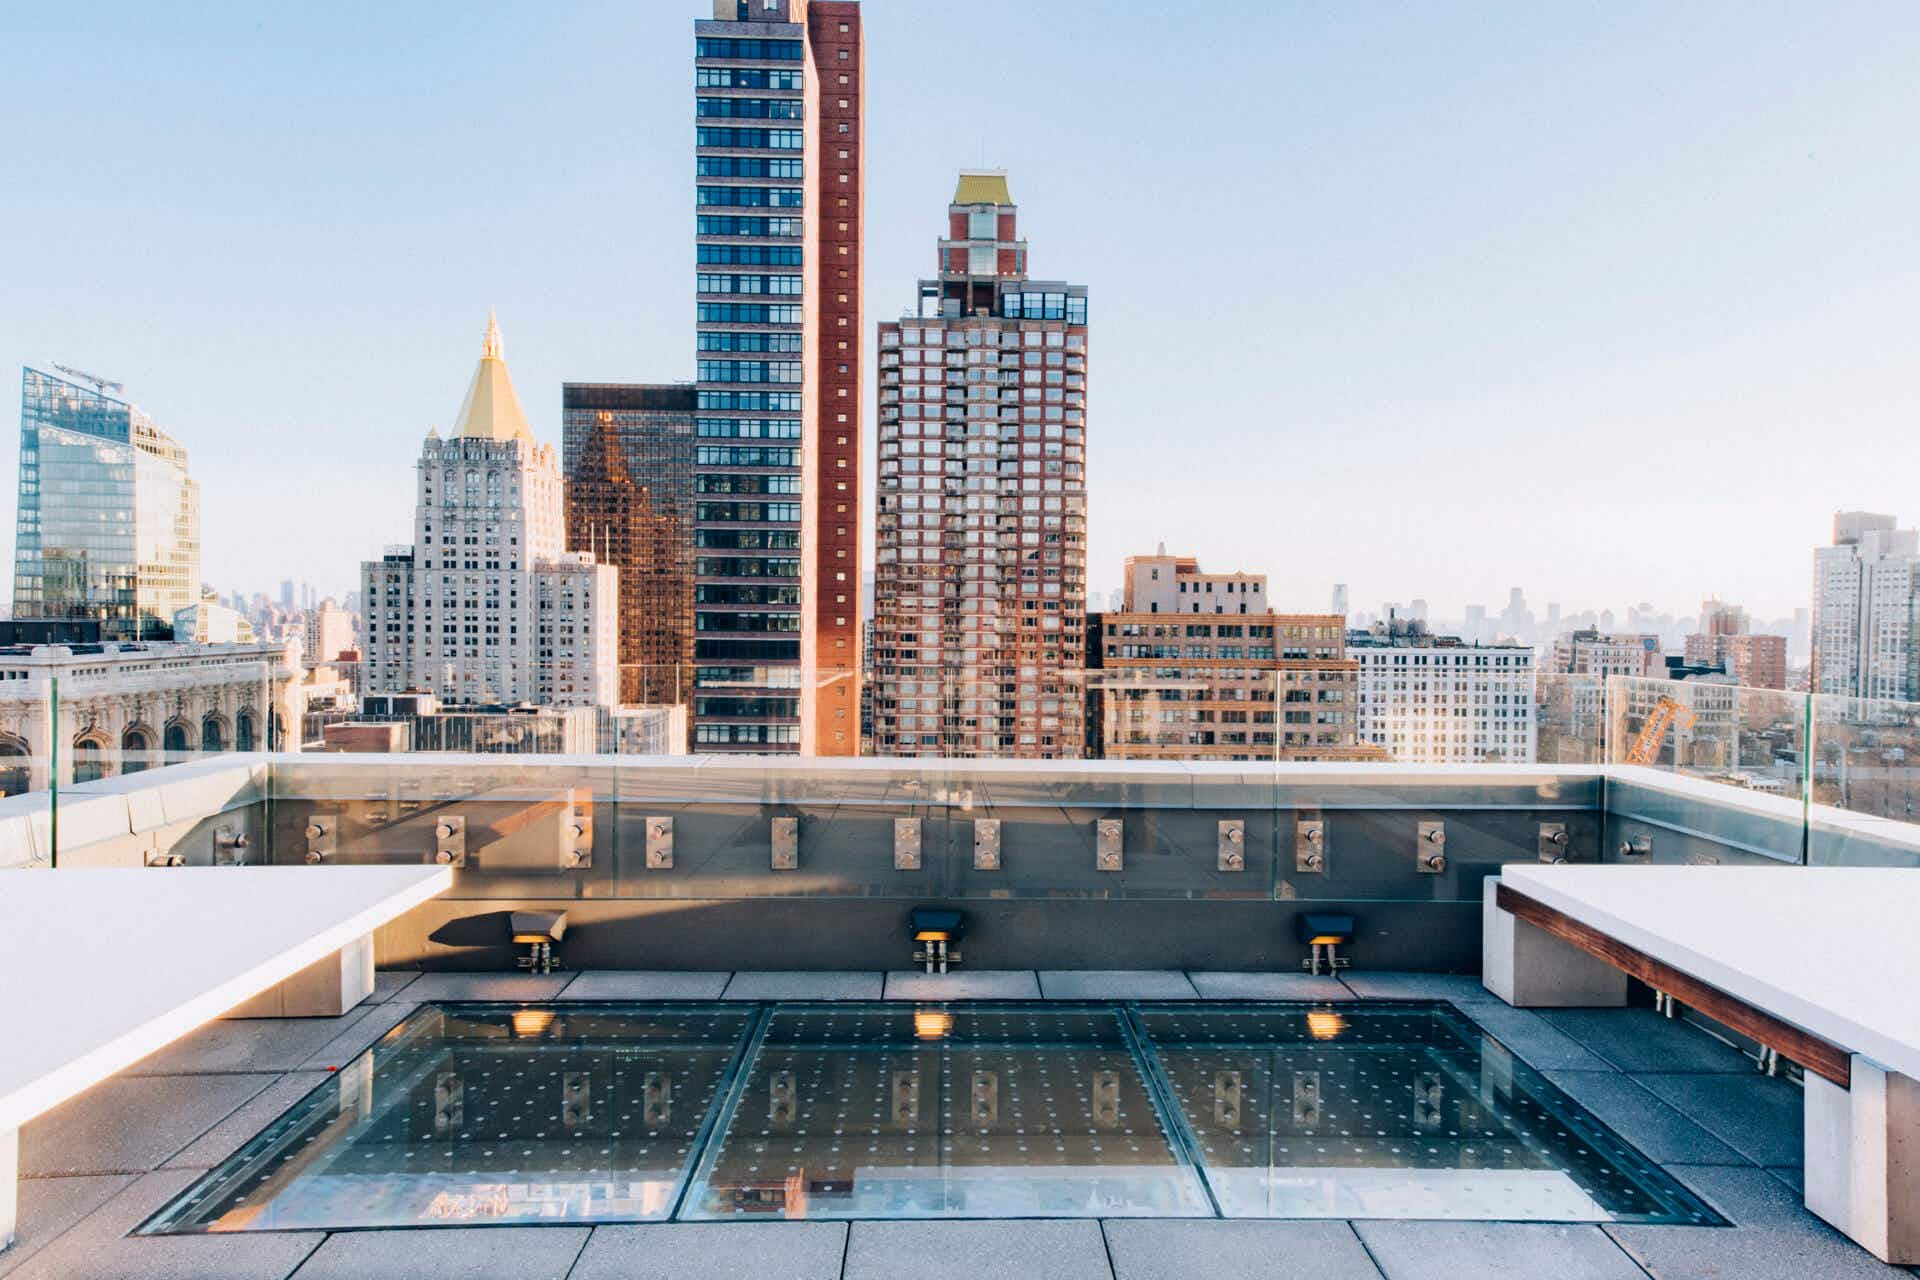 Don't look down – this newly opened NYC rooftop bar has a glass-bottomed floor